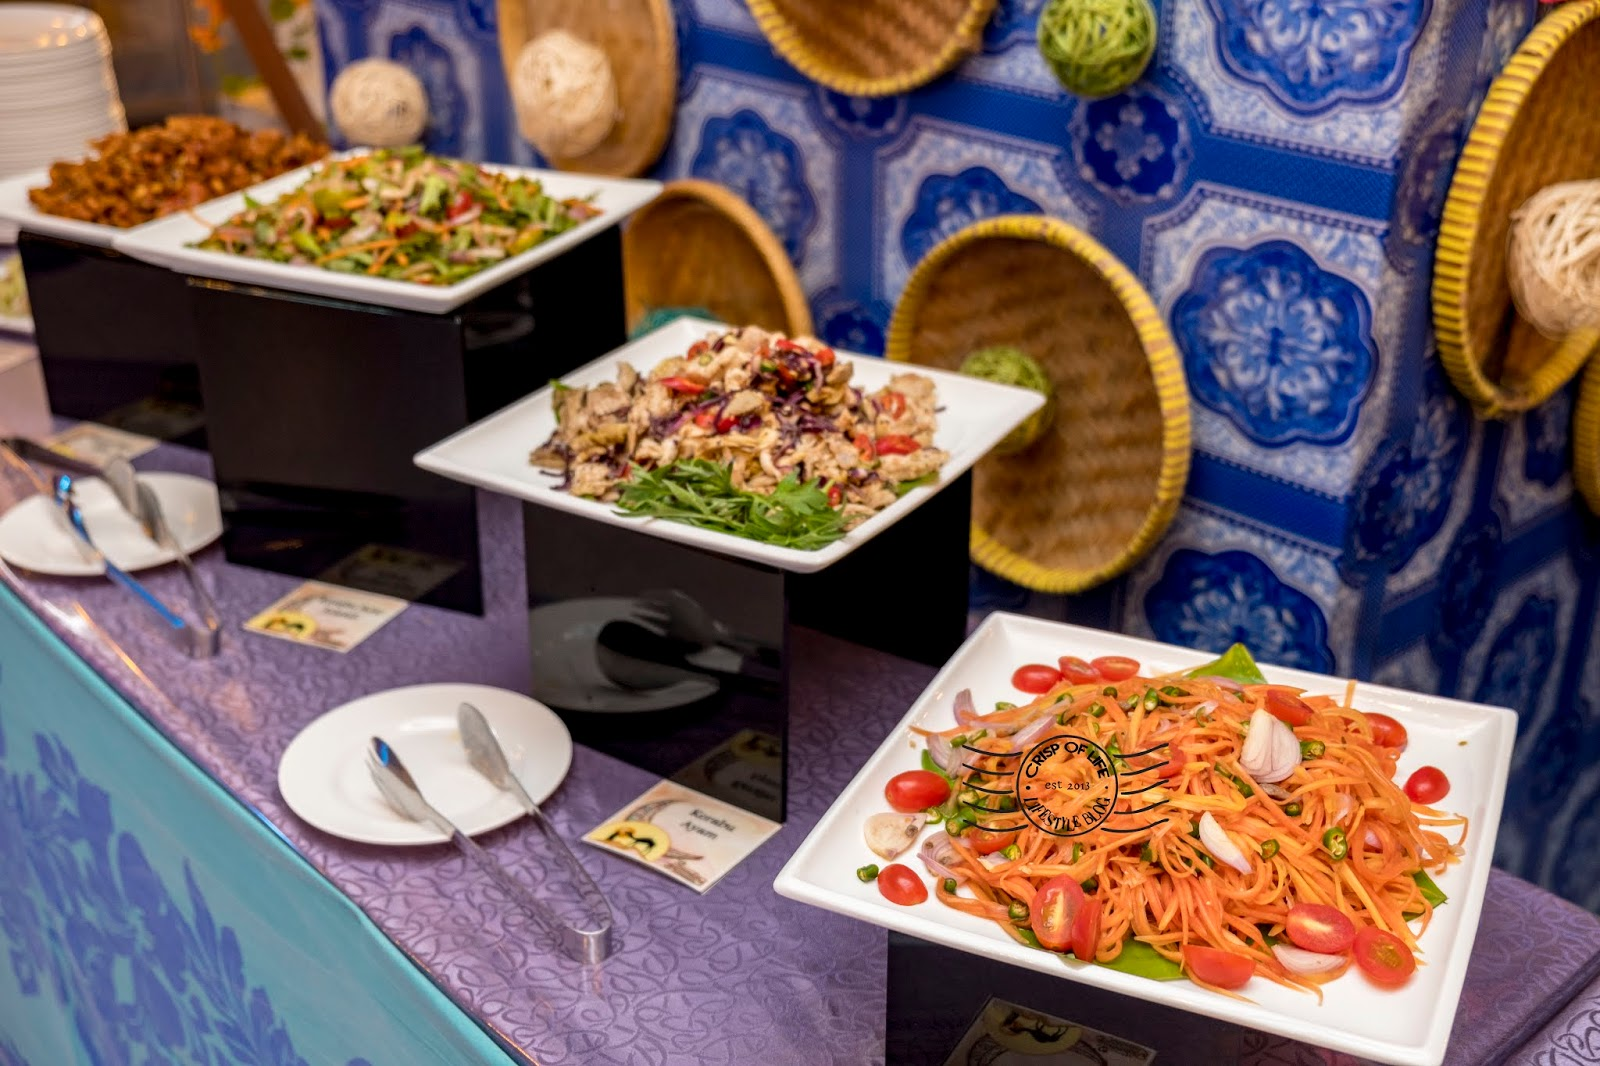 Singgah Iftar Buffet Dinner 2019 at Iconic Hotel Penang